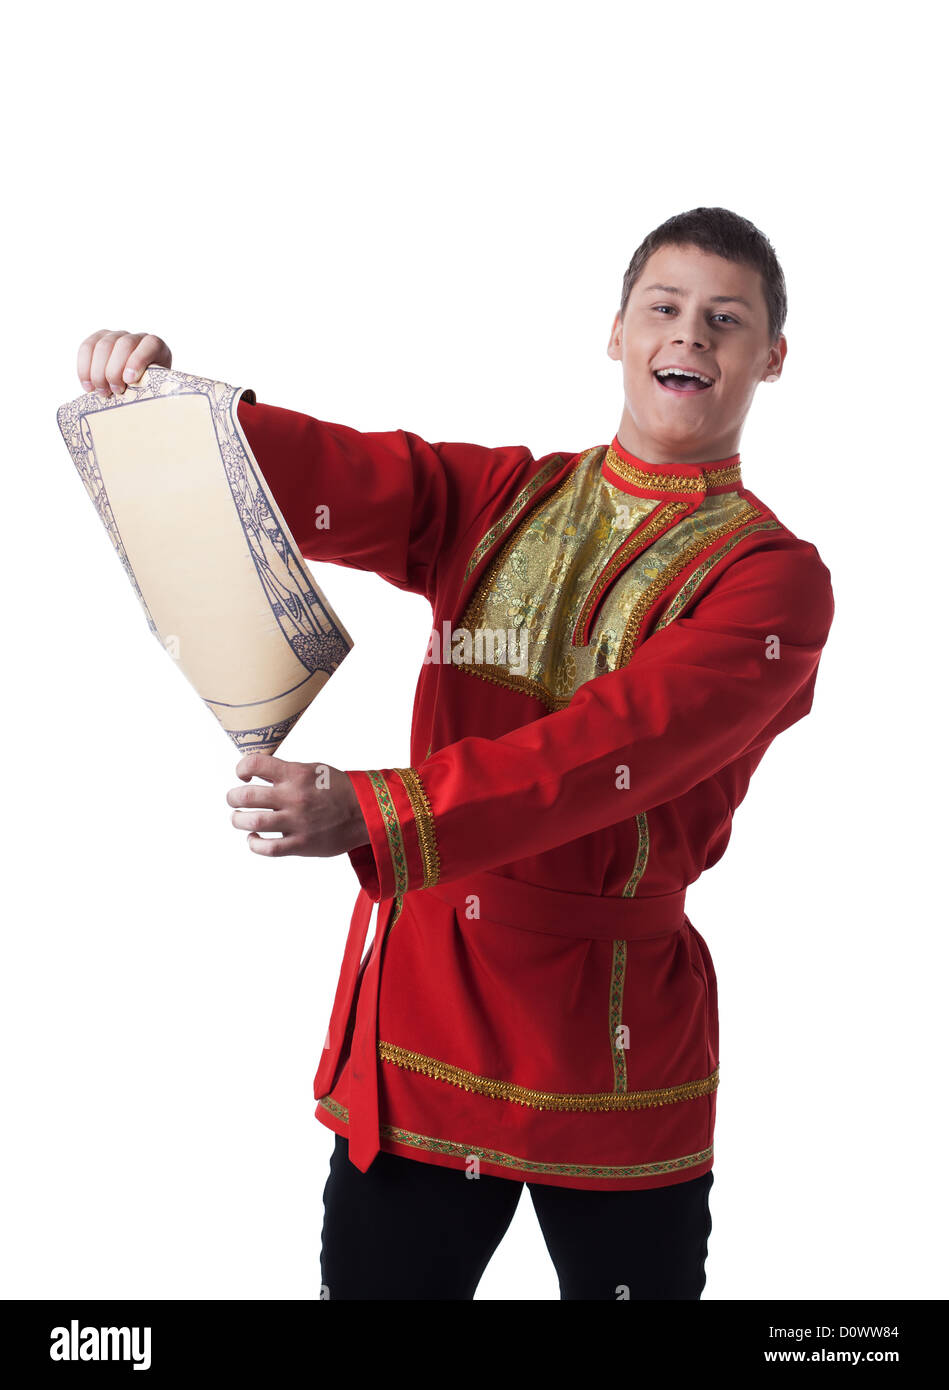 Dancer in russian costume with paper - Stock Image